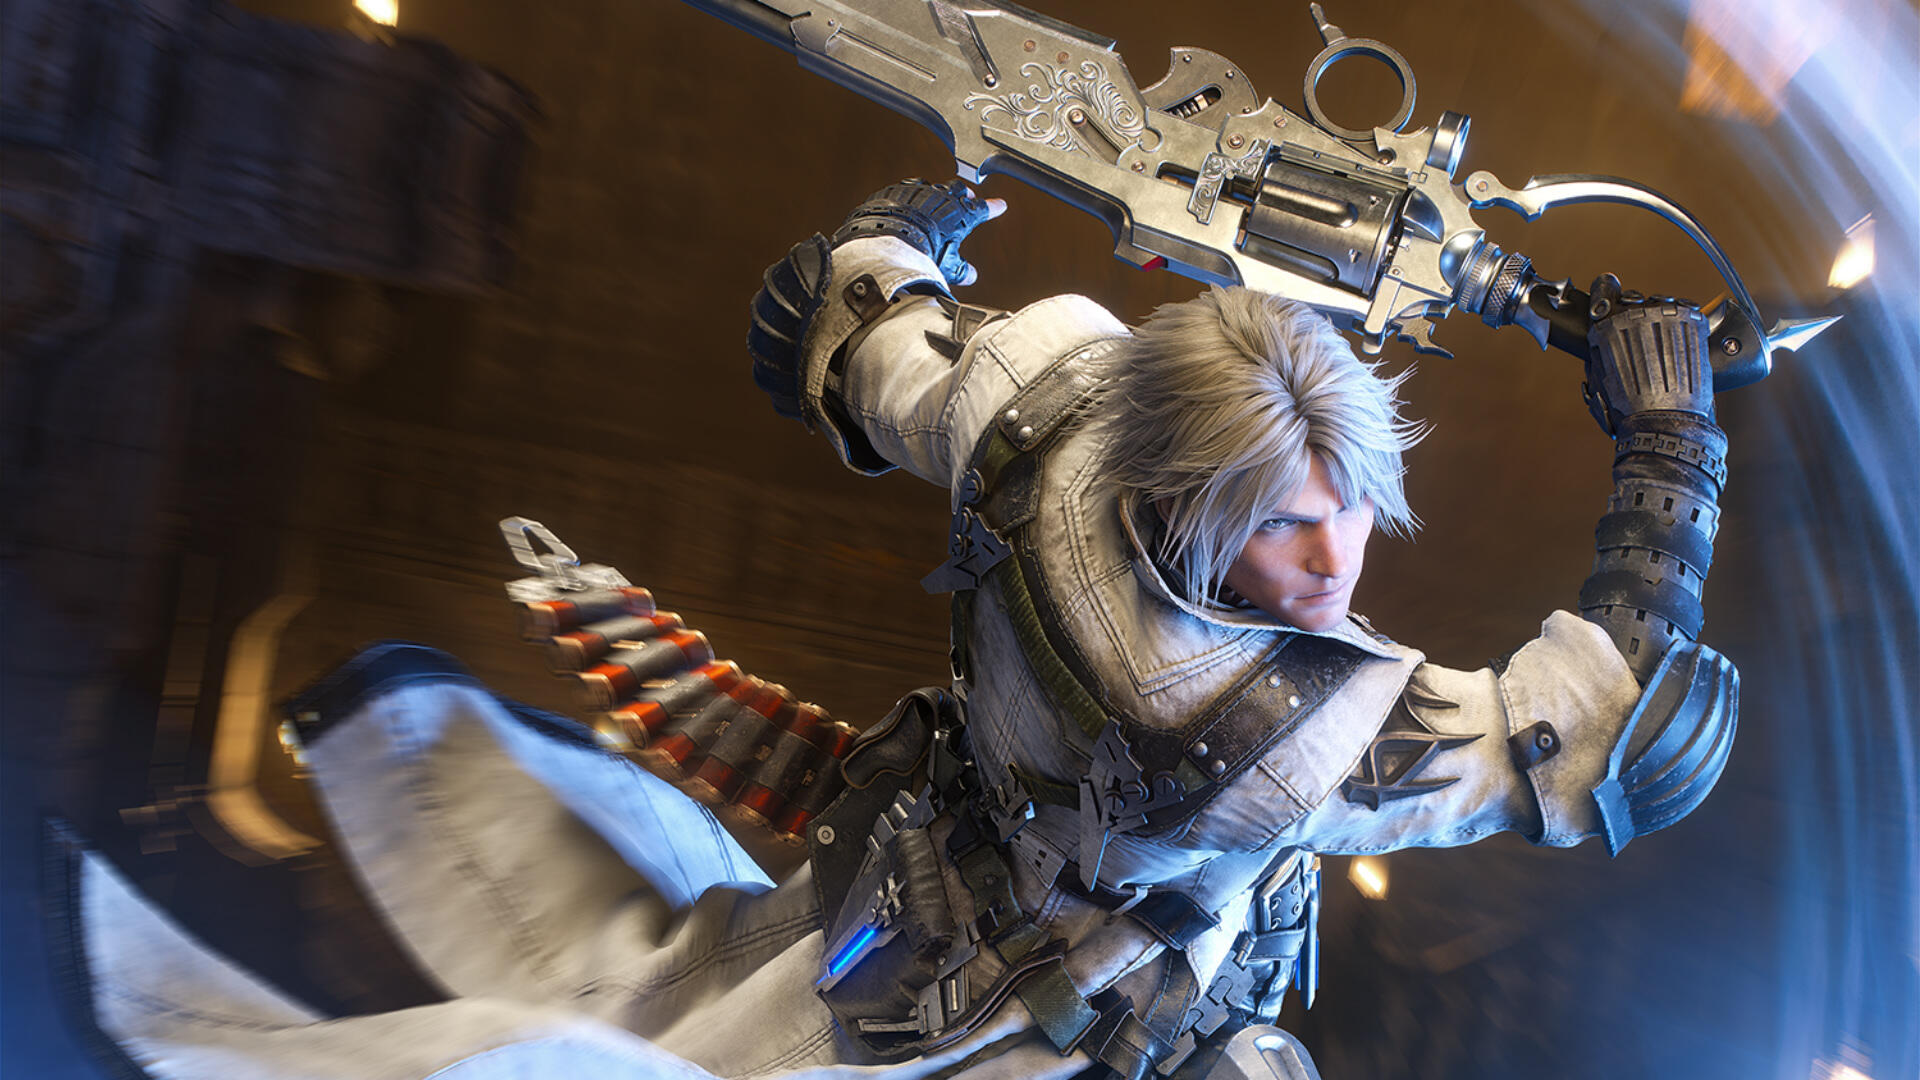 Final Fantasy 14 Aiming to Resolve Its Longstanding Pacing Complaint With Patch 5.3